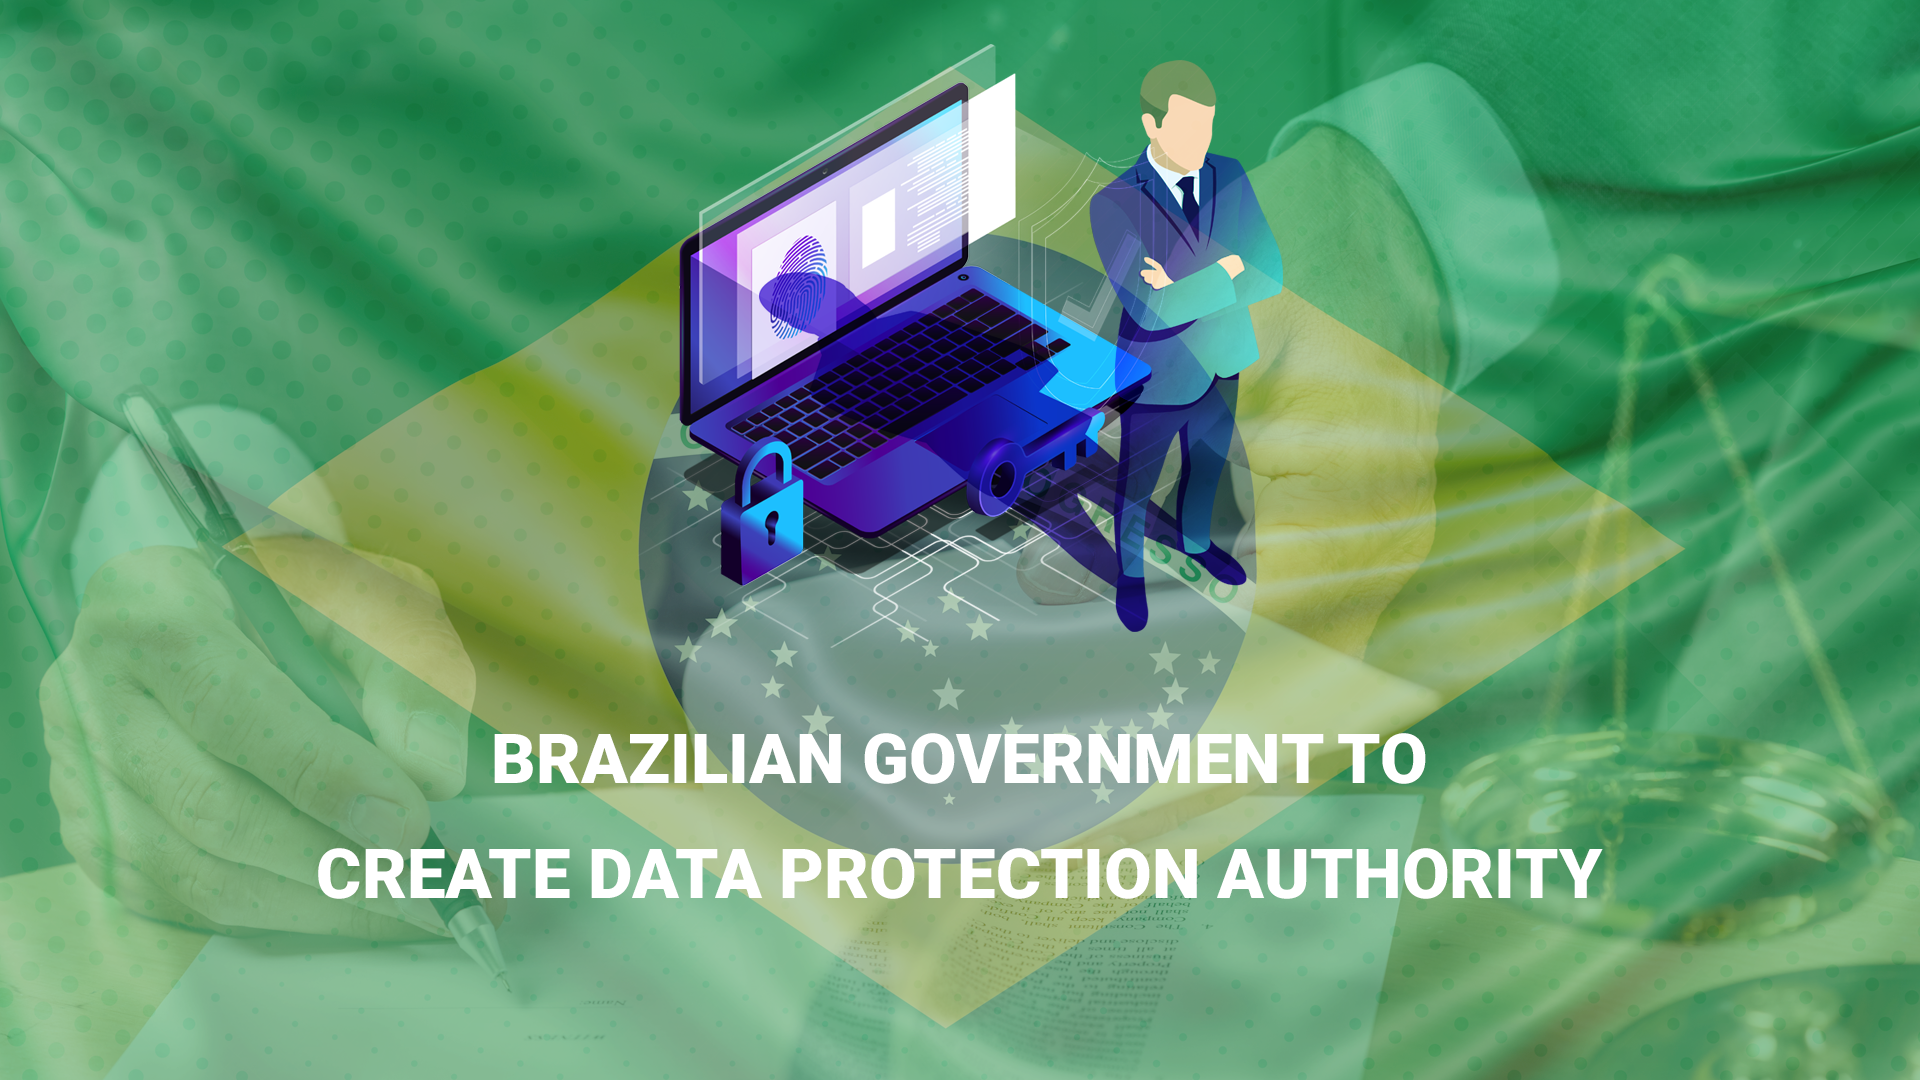 Brazilian government to create data protection authority